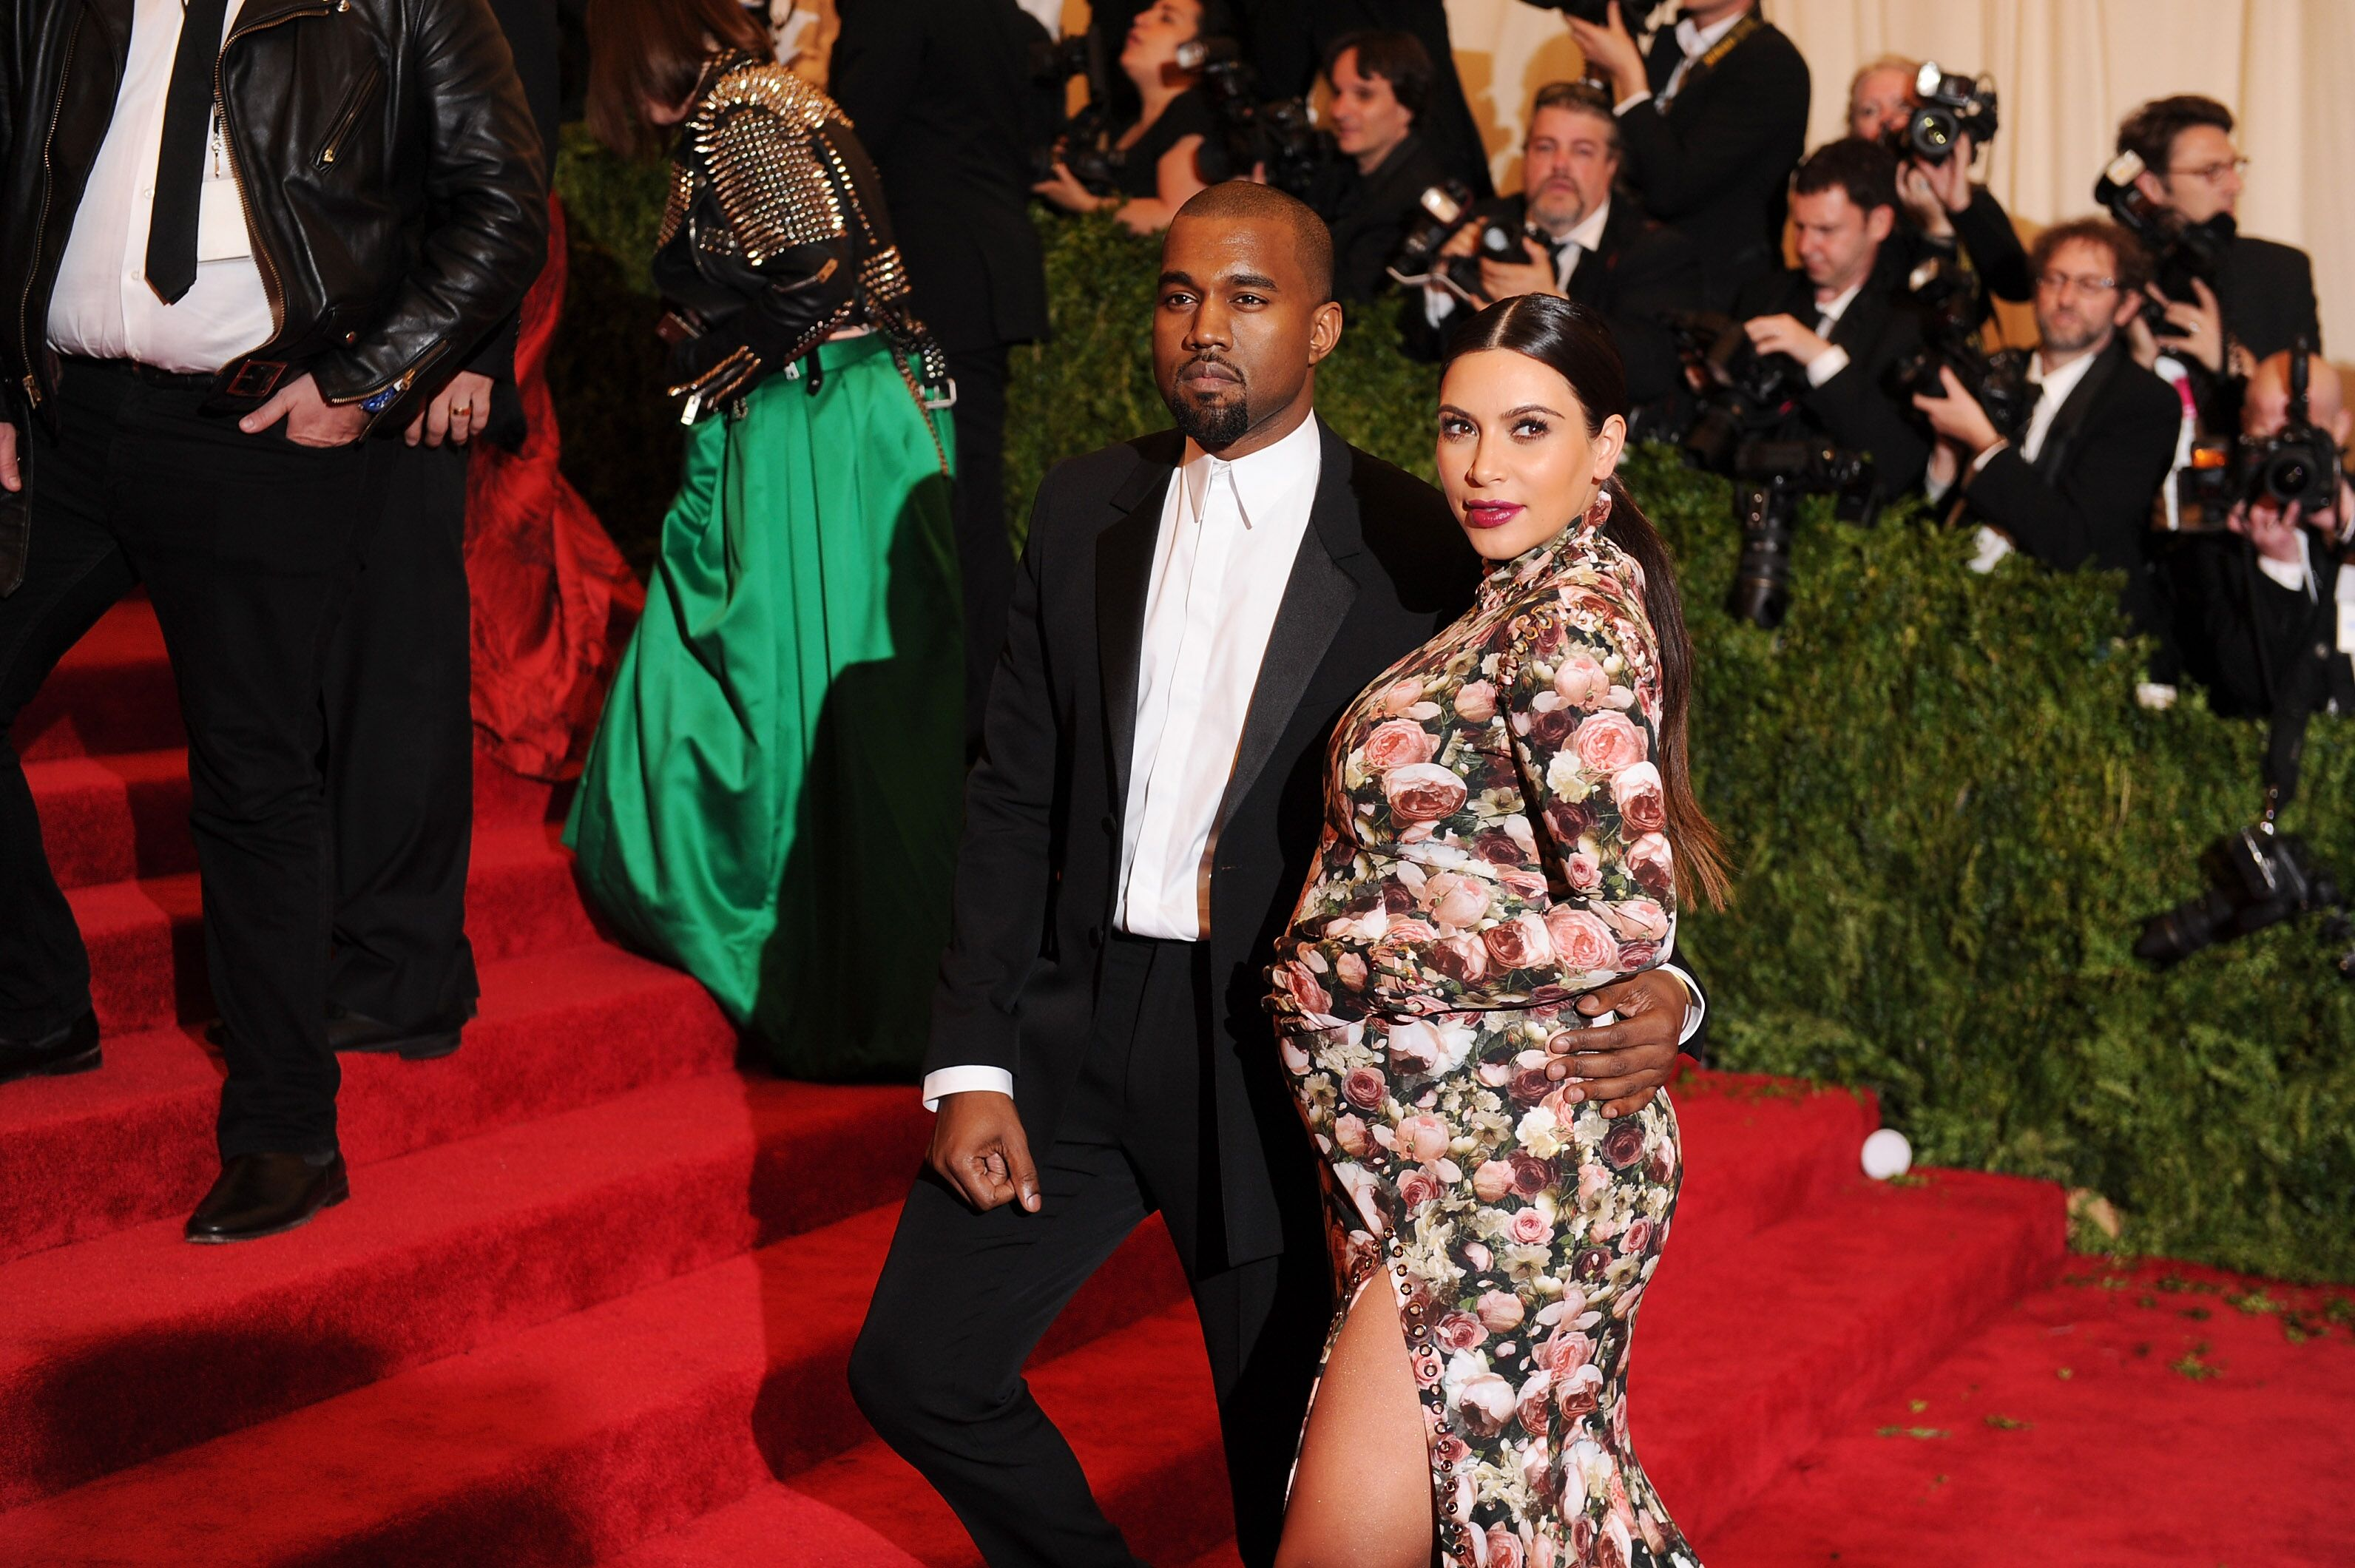 Kim Kardashian and Kanye West attend the MET Gala | Source: Getty Images/GlobalImagesUkraine